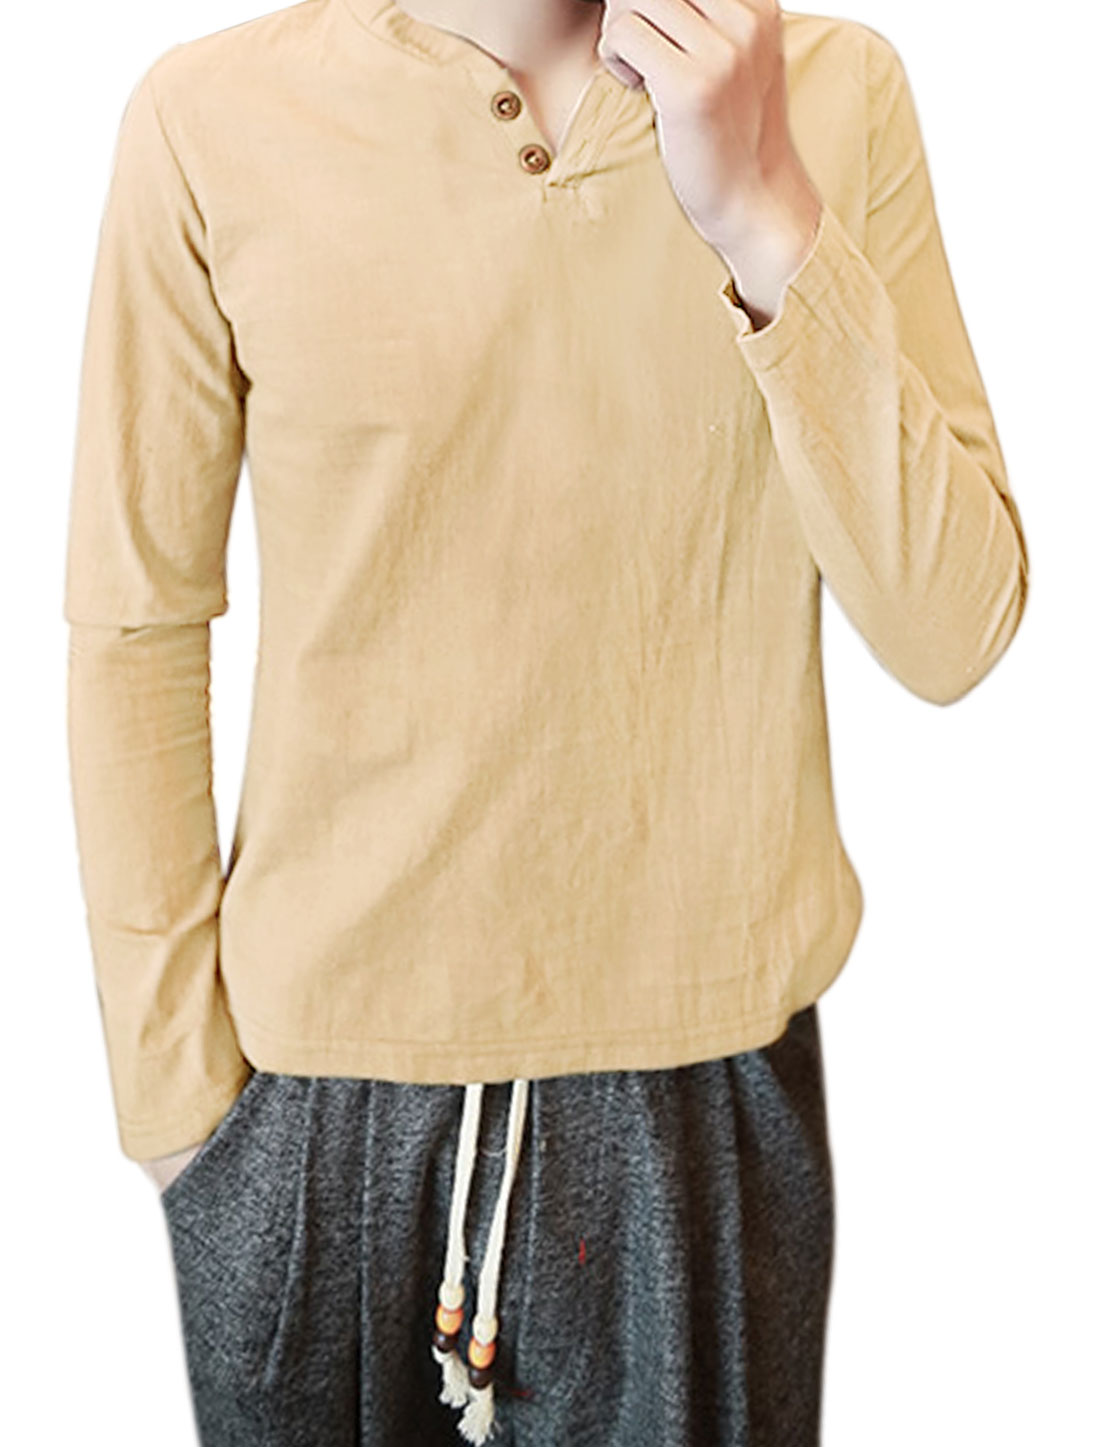 Men Split Neck Long Sleeves Buttoned T-Shirt Beige S